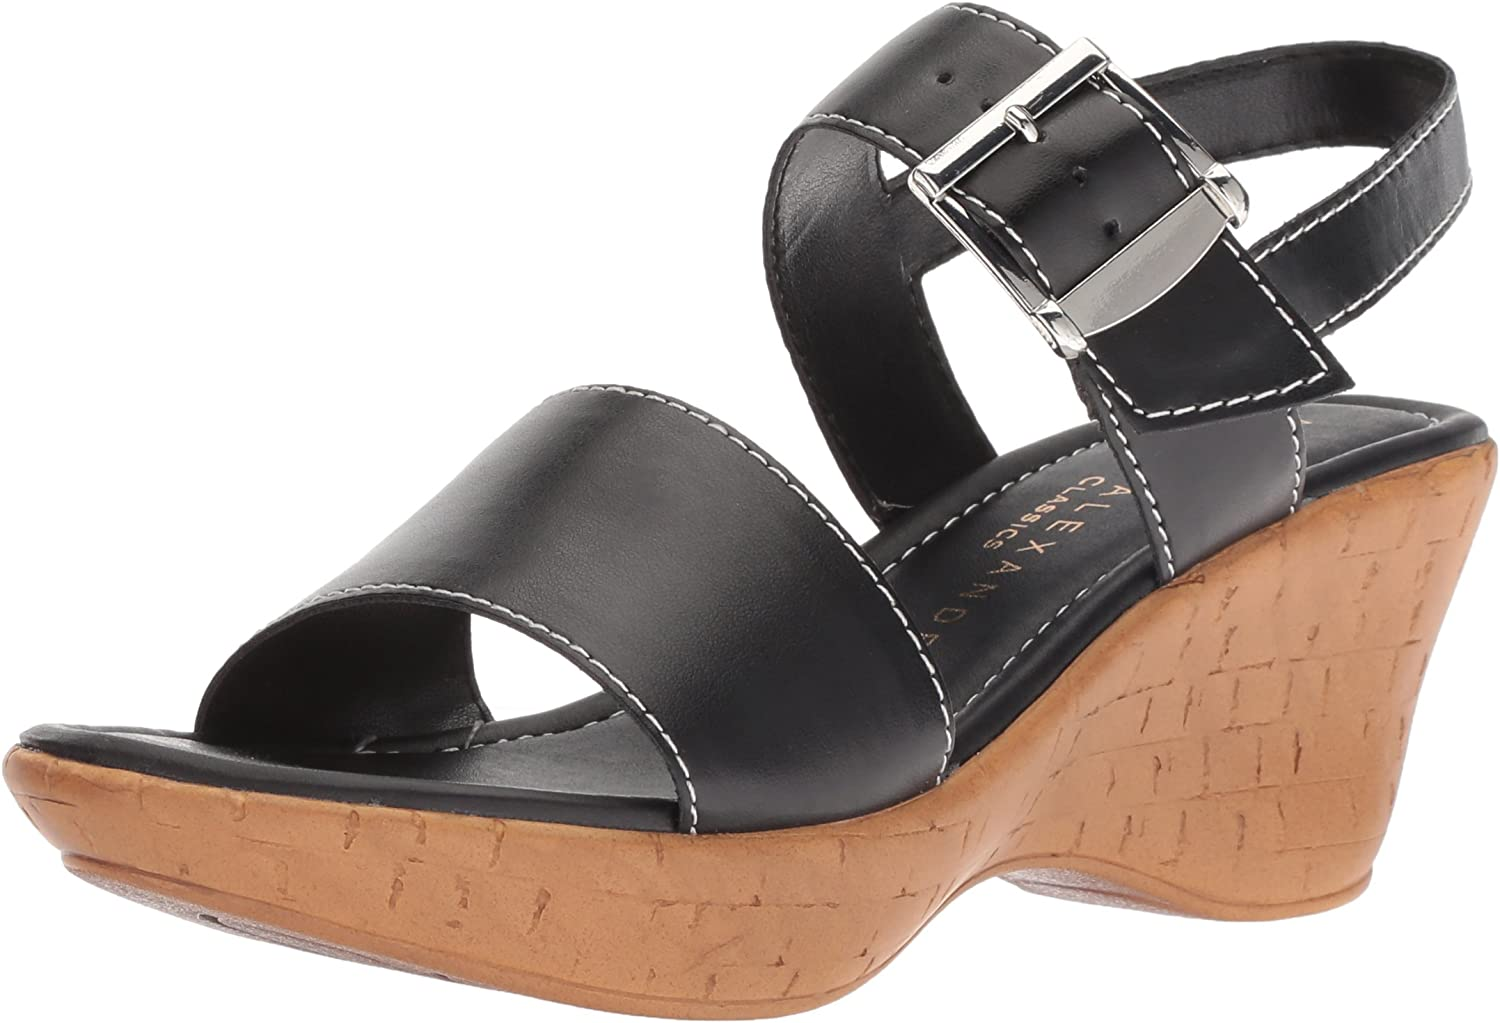 Athena Alexander Womens Shelter Wedge Sandal